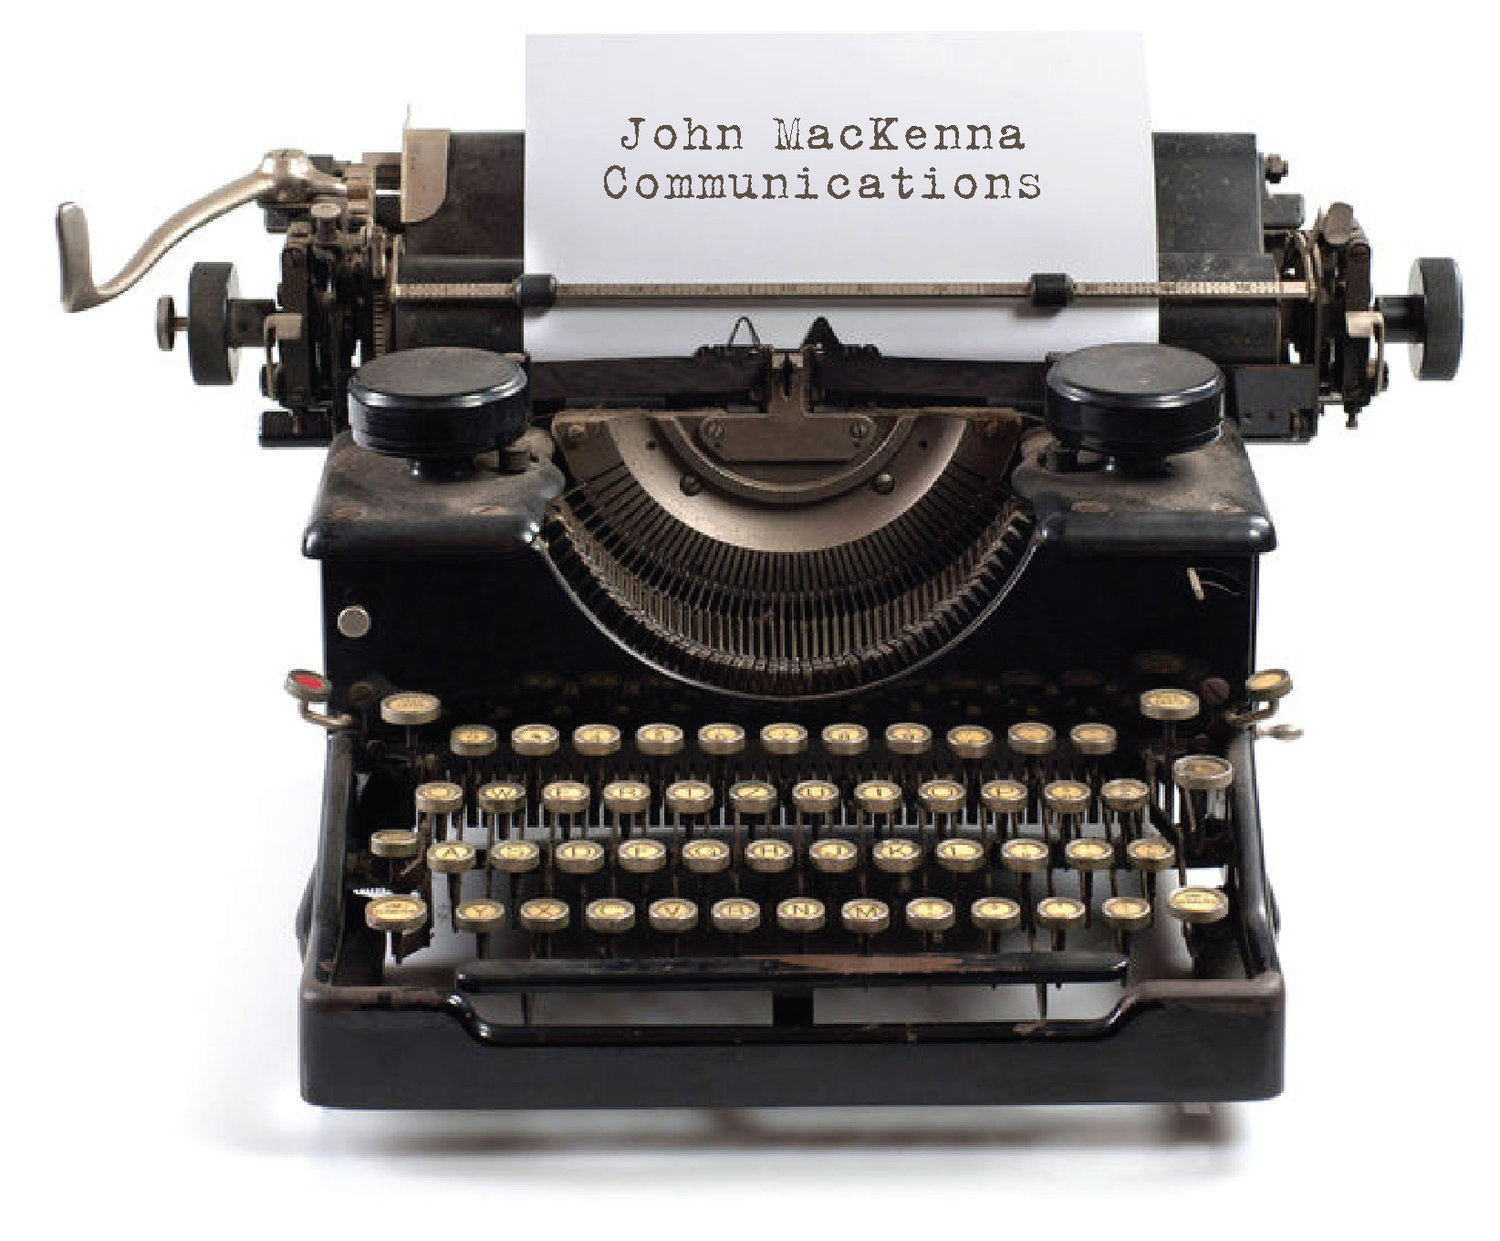 John MacKenna Communications